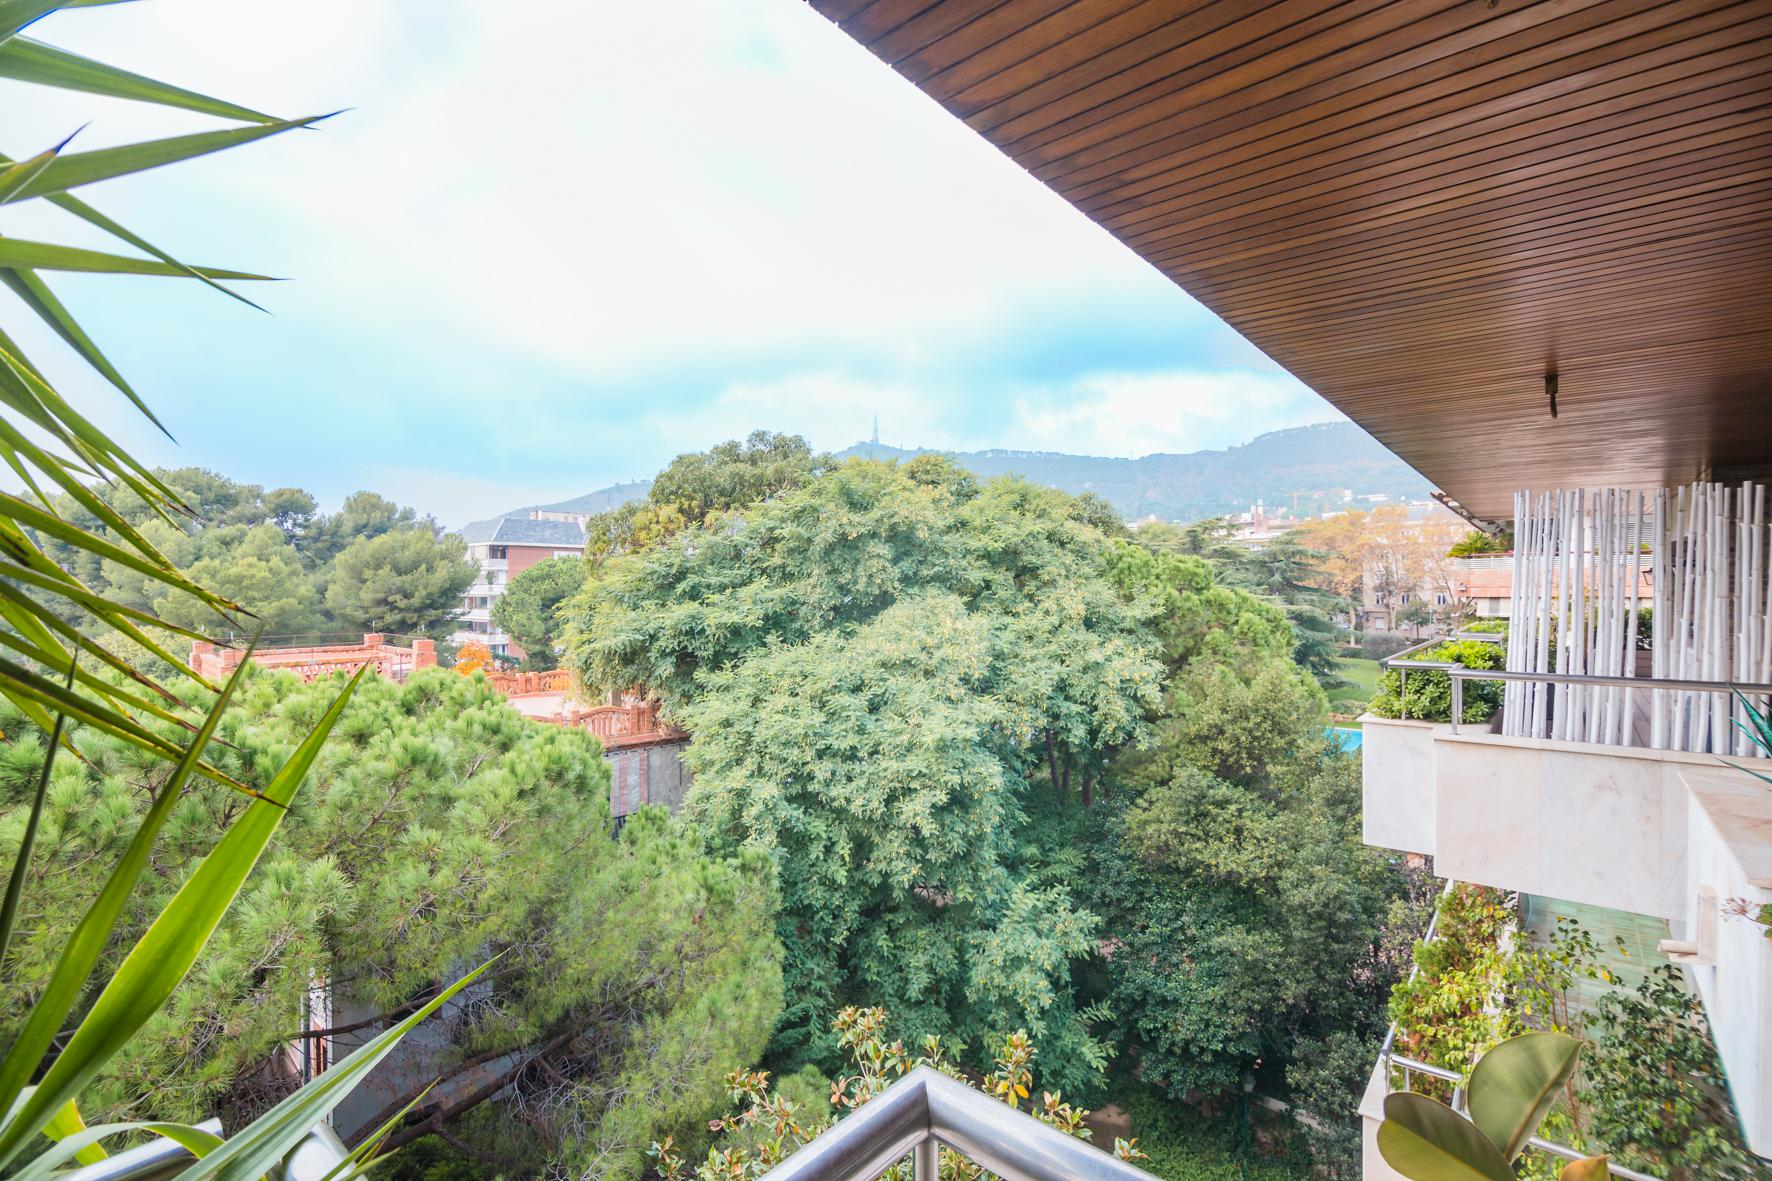 244103 Penthouse for sale in Les Corts, Pedralbes 2